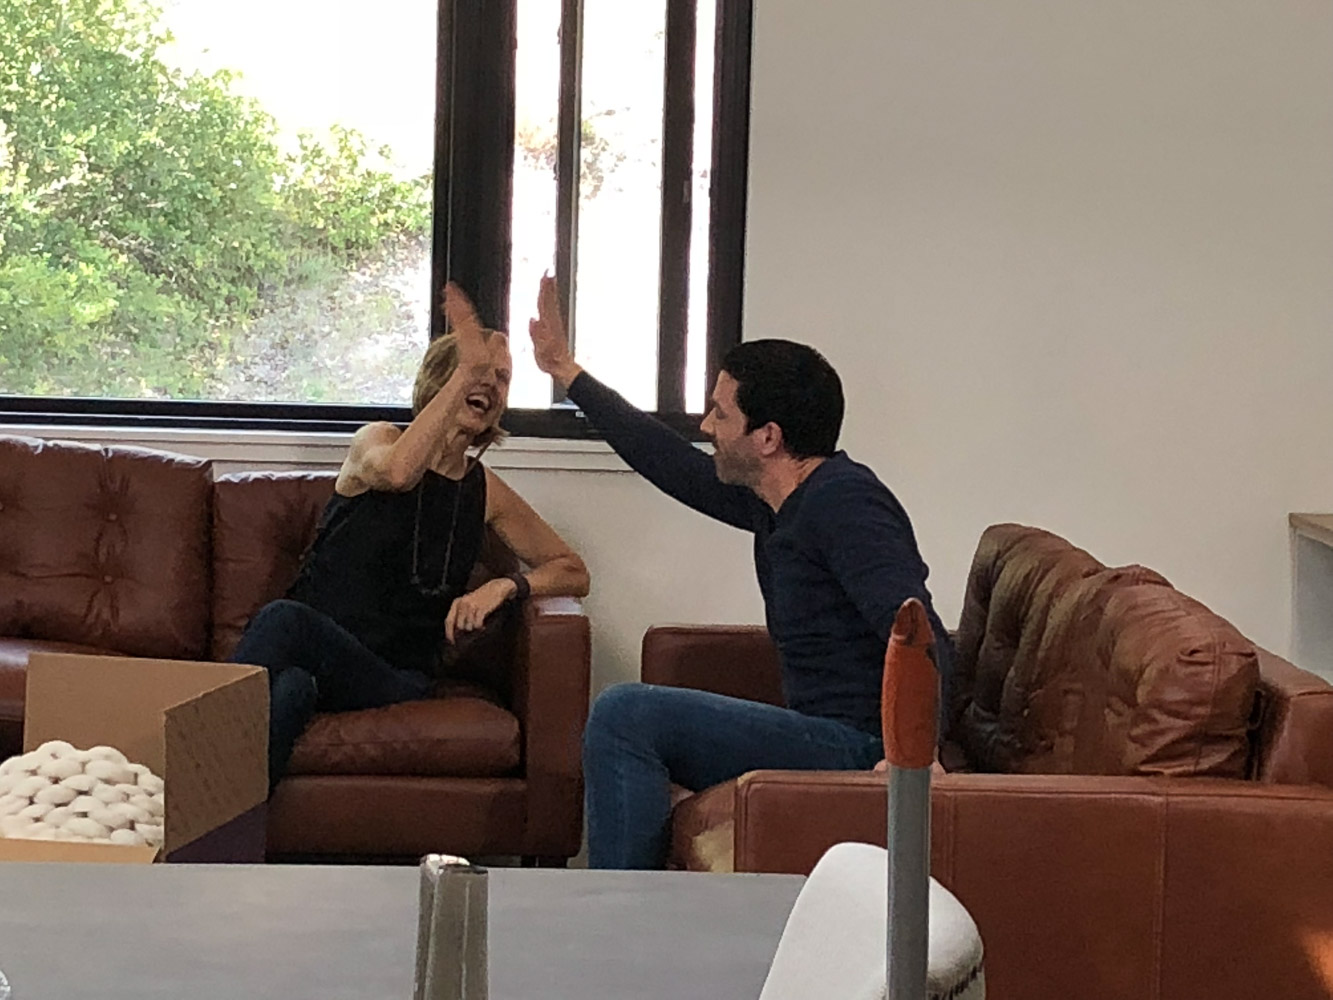 A woman and a man high fiving on two leather sofas.